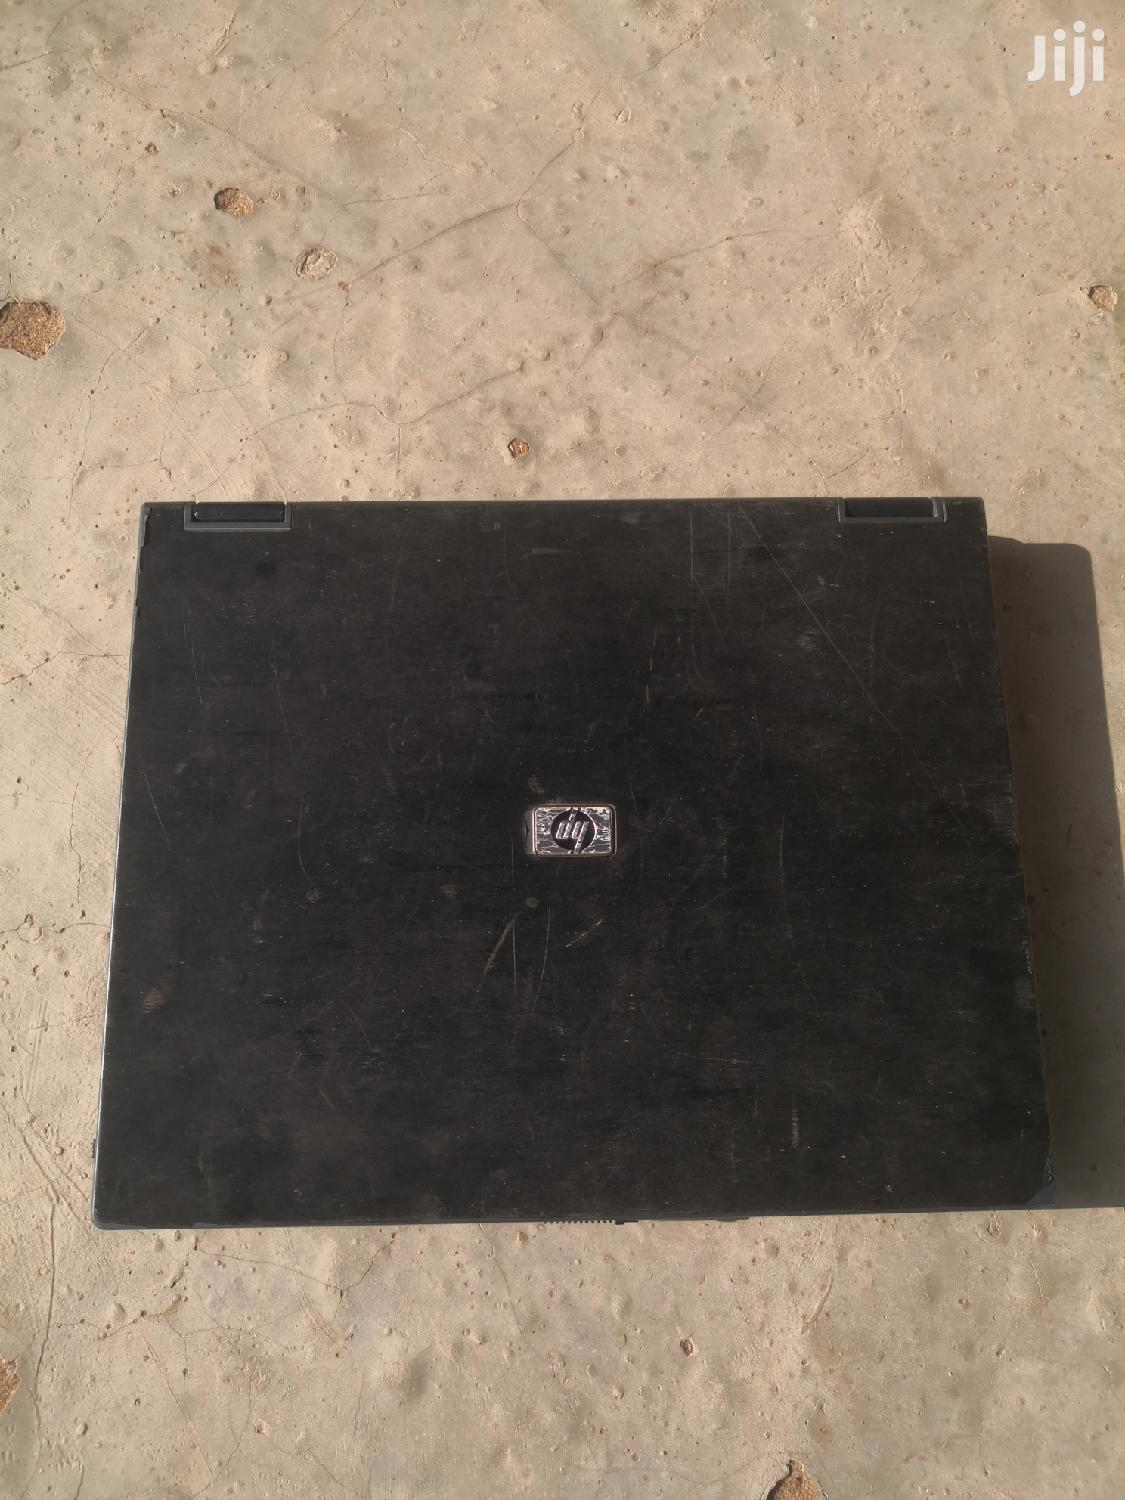 Archive: Laptop HP Compaq 2710p 2GB Intel Core 2 Duo HDD 160GB